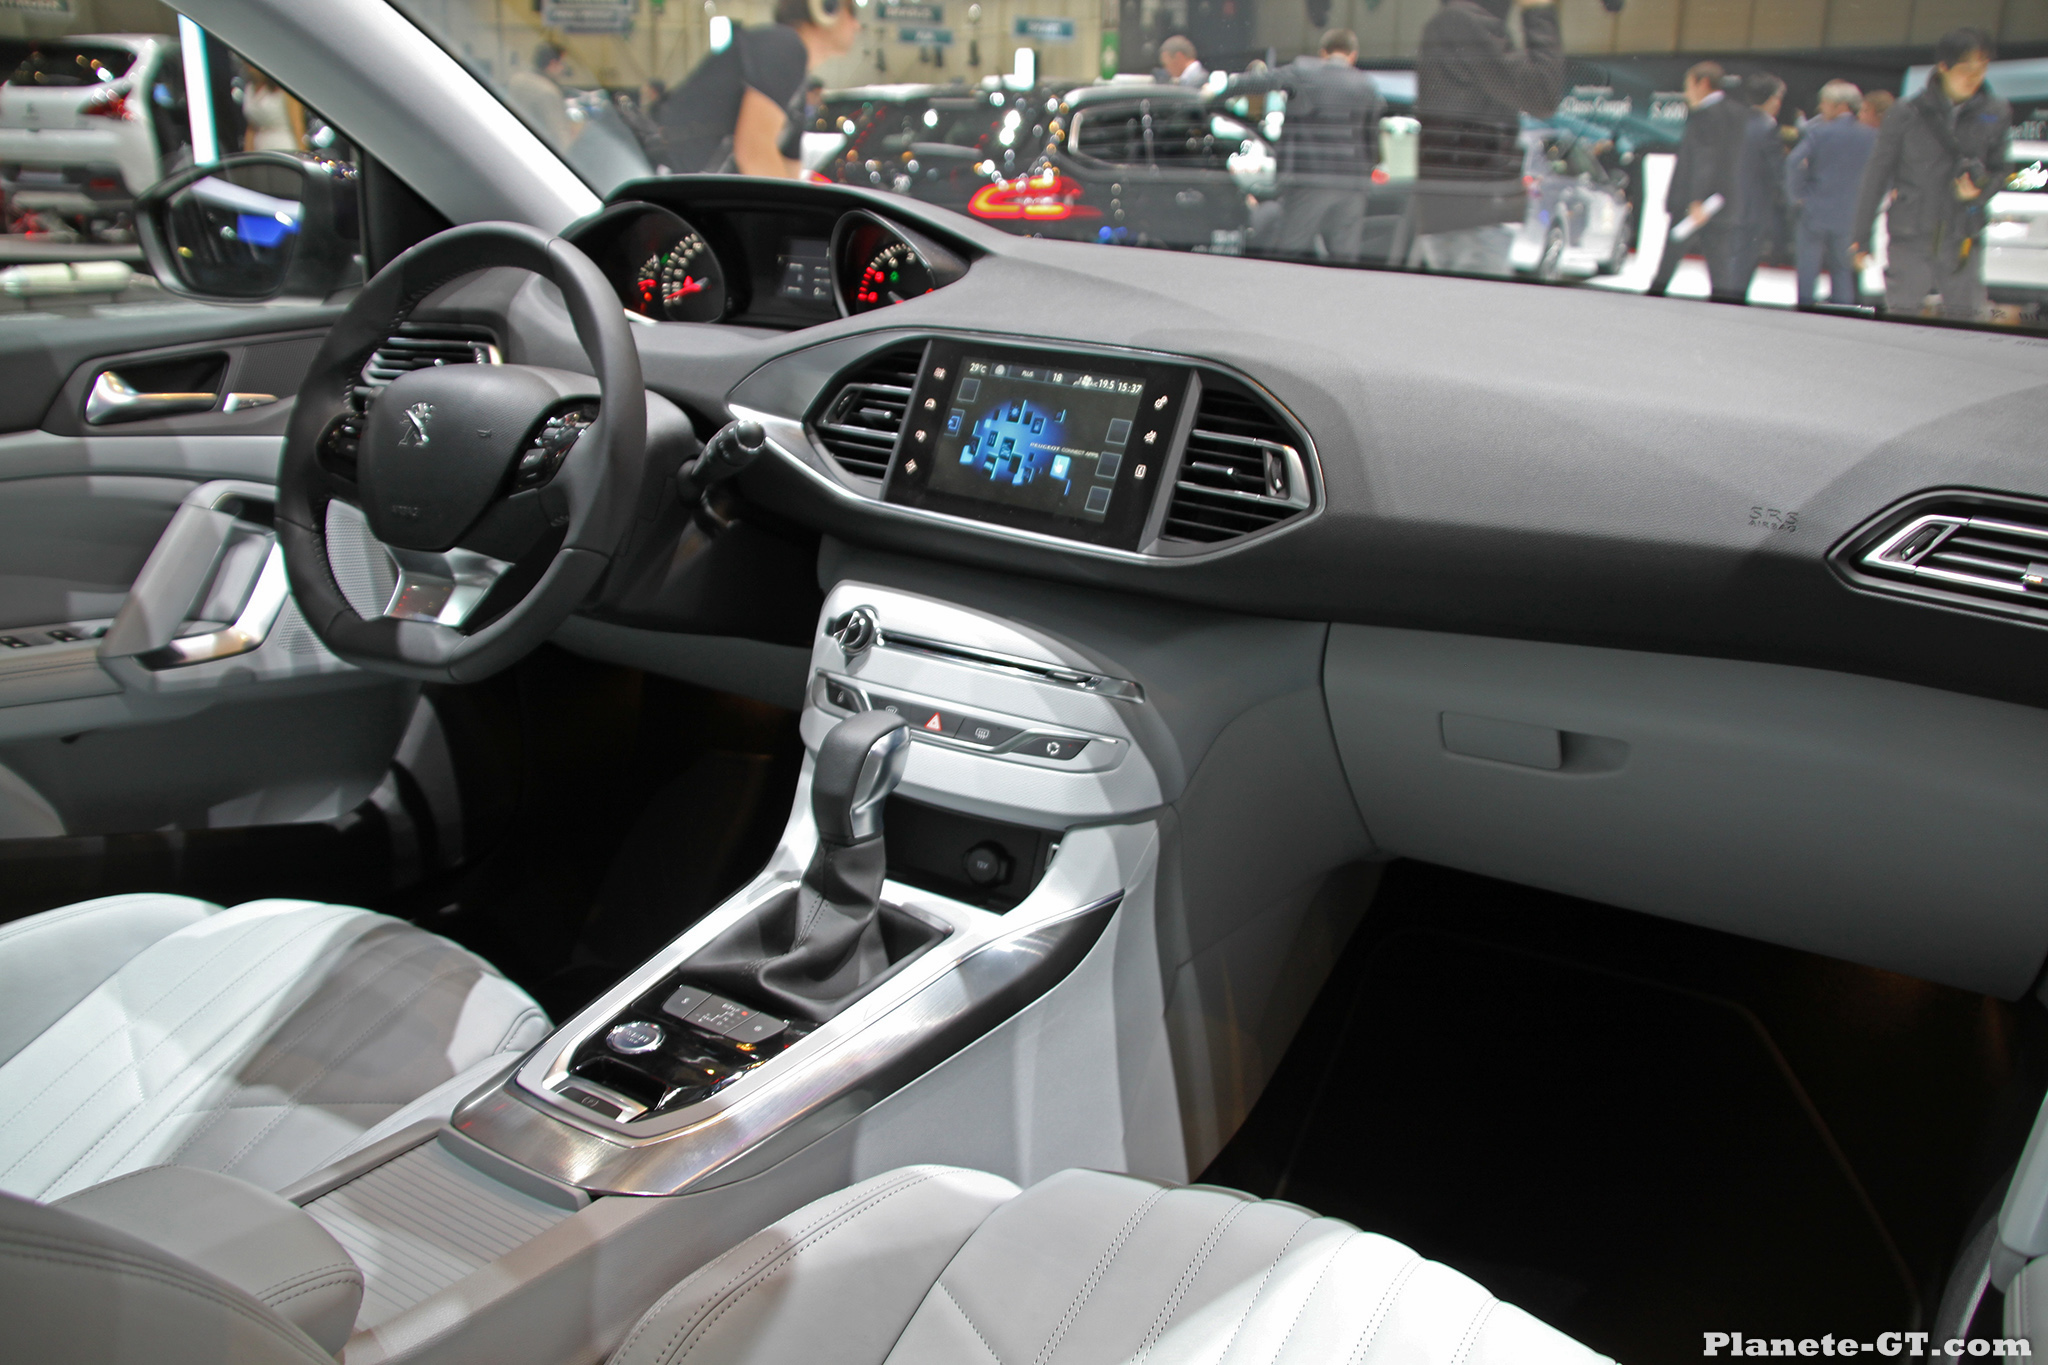 Geneve 2014 peugeot 308 sw interieur 03 plan te for Peugeot 308 r interieur